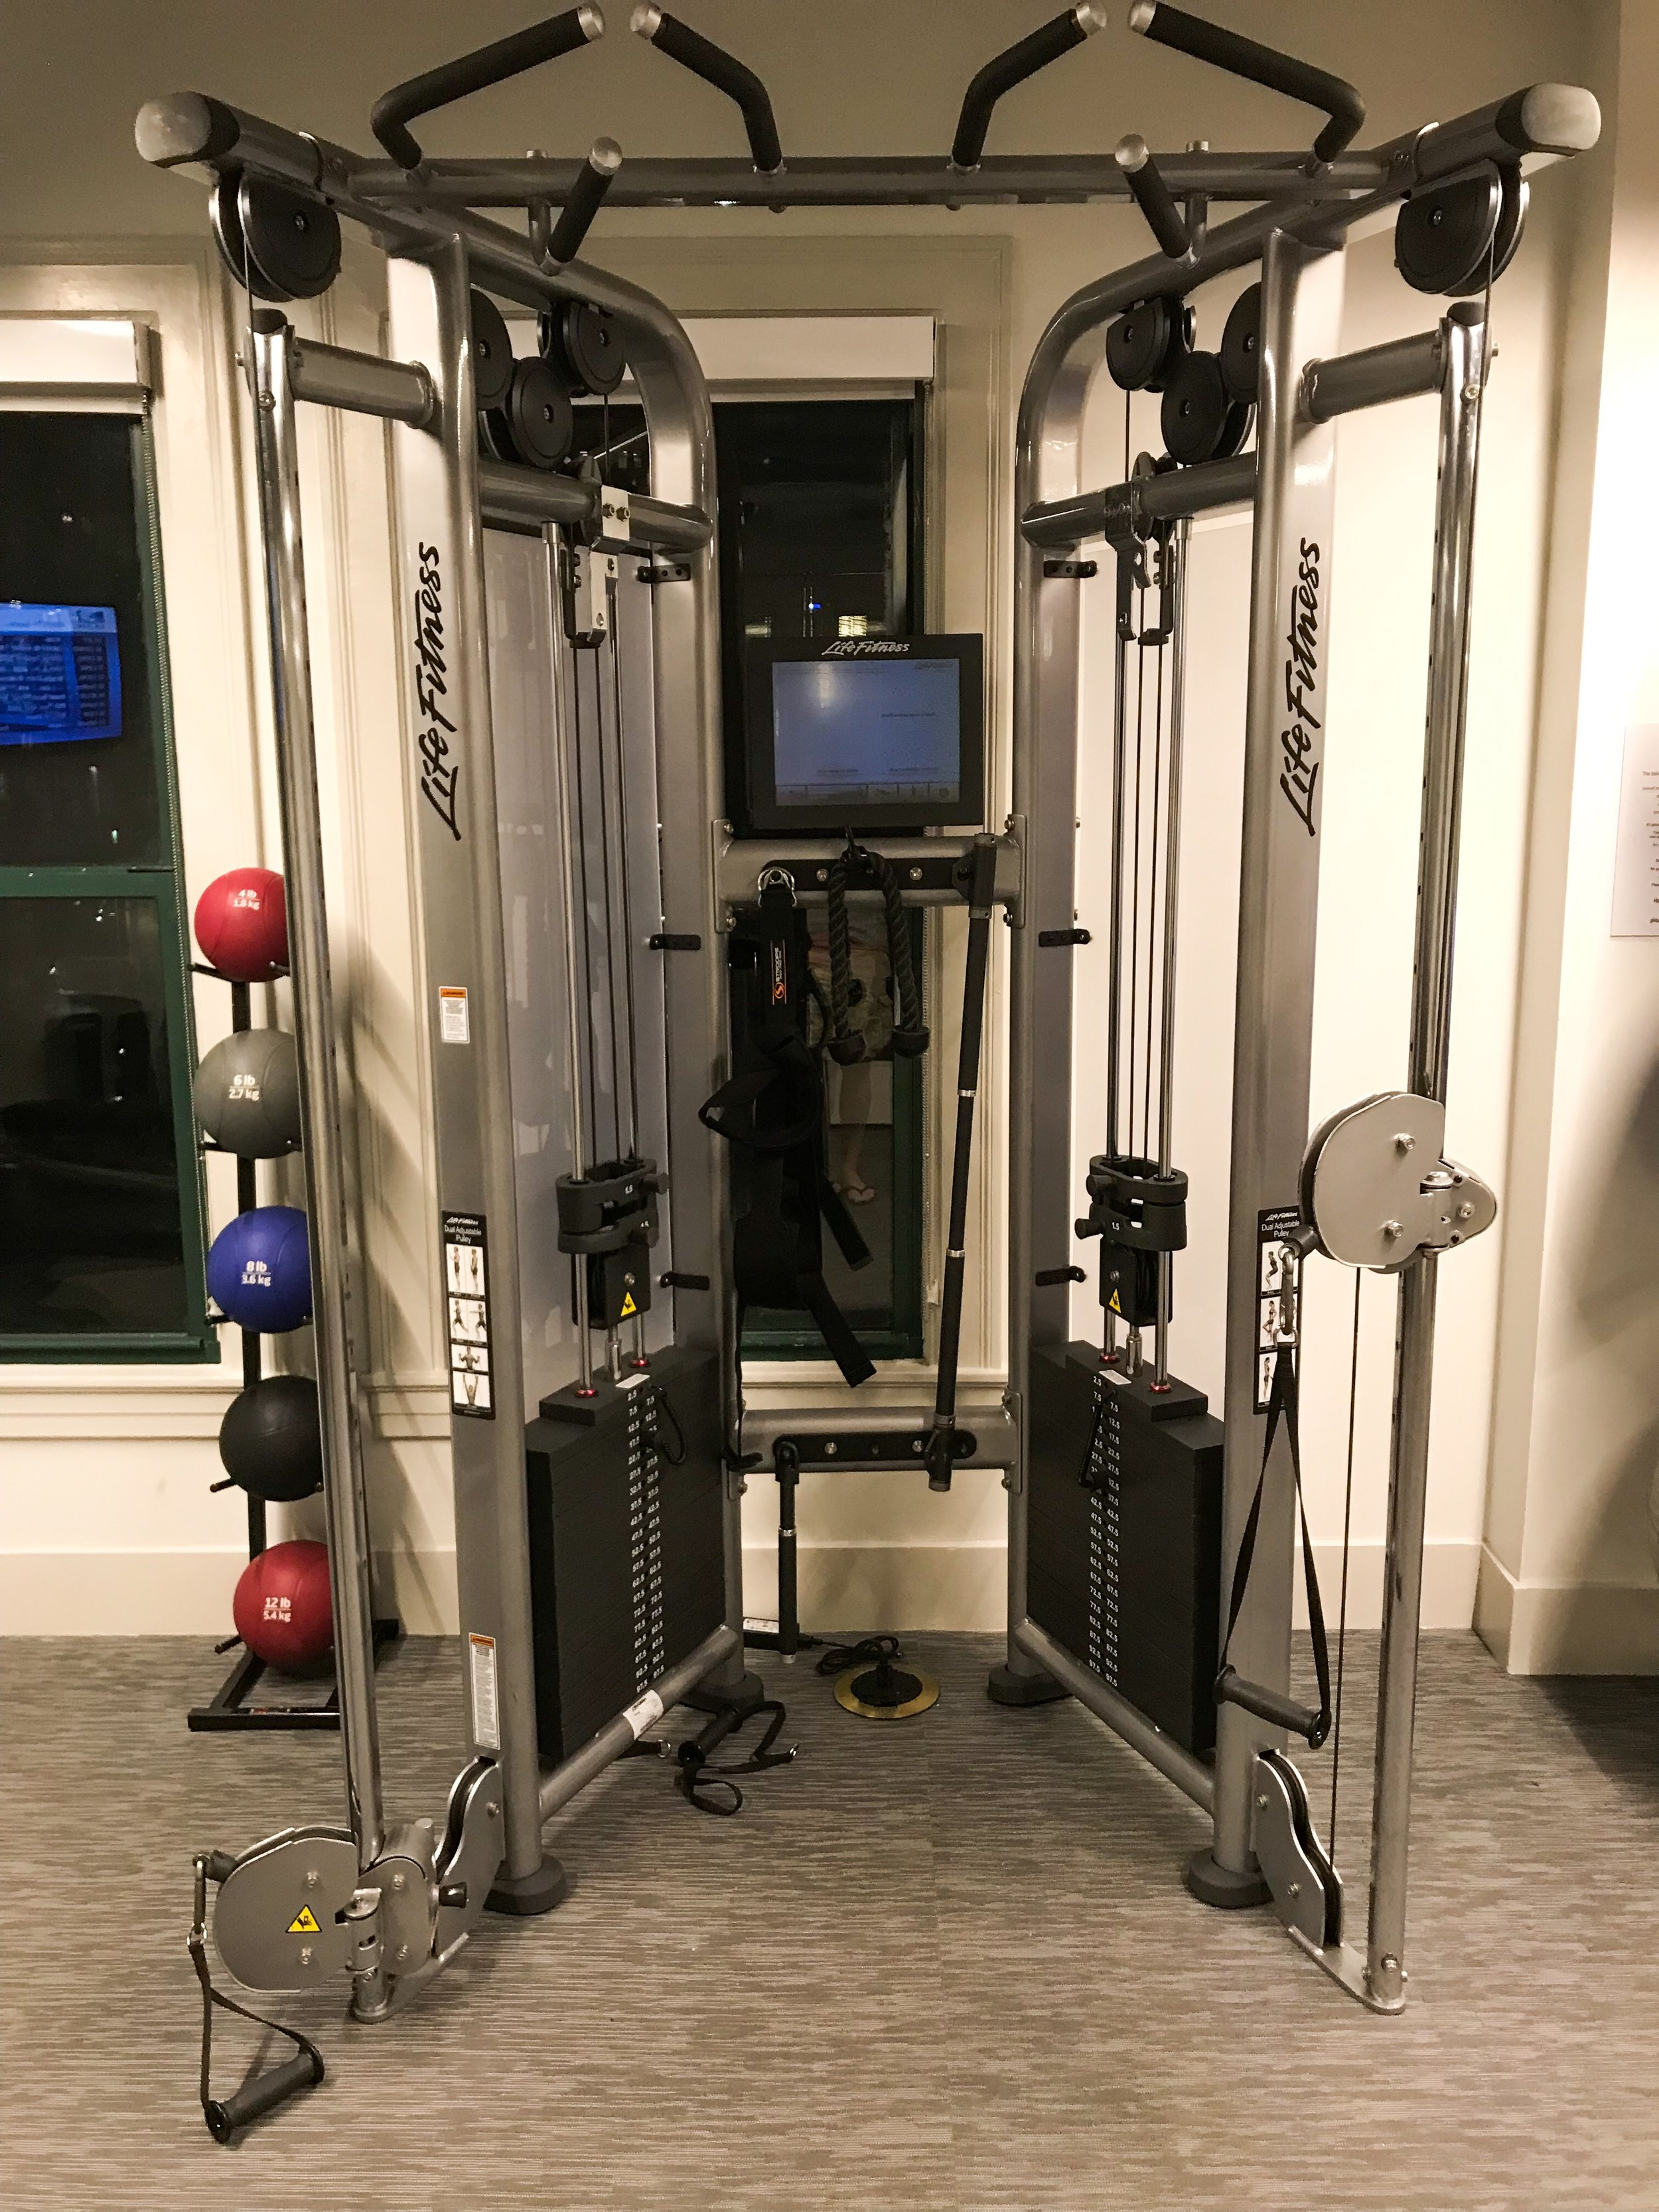 There was also a LifeFitness weight machine.